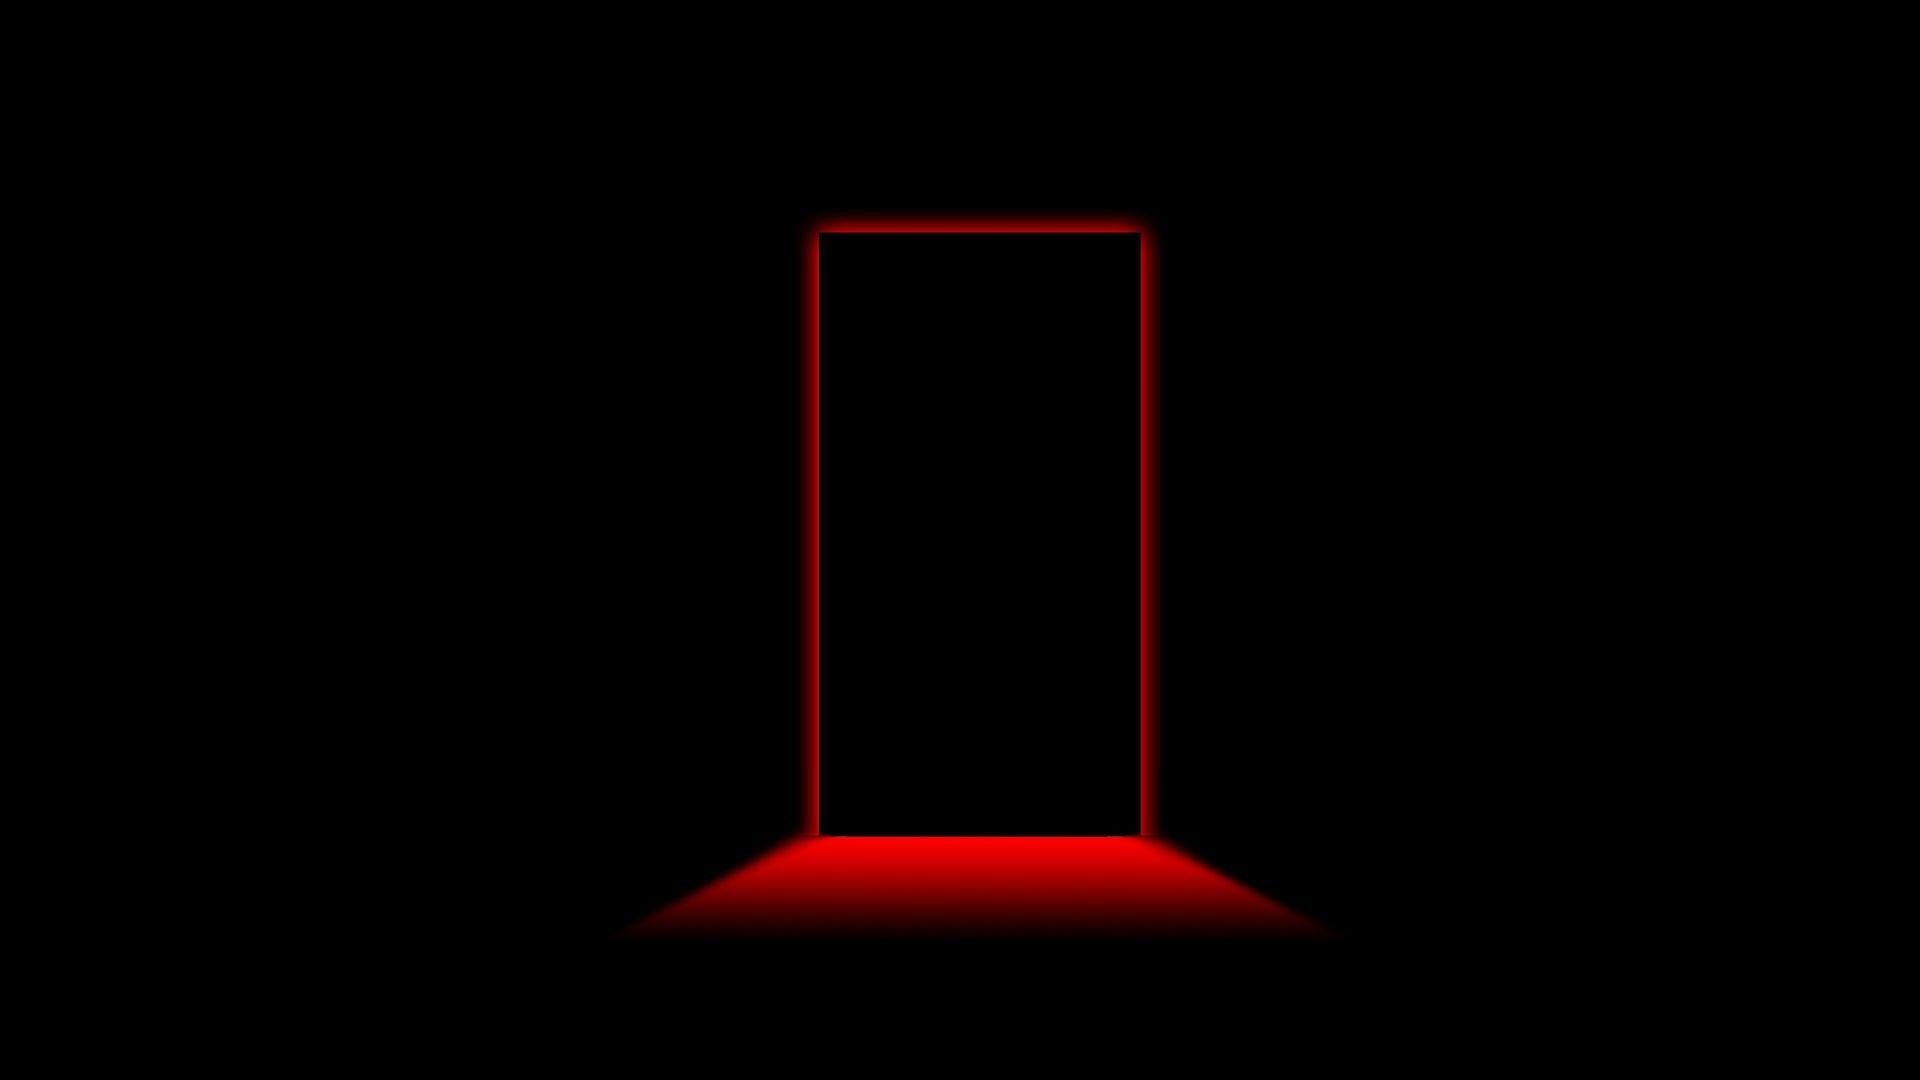 1920x1080 Wallpaper Door Light Shadow Black Red Black Wallpaper Hd Cool Wallpapers Black Hd Wallpaper